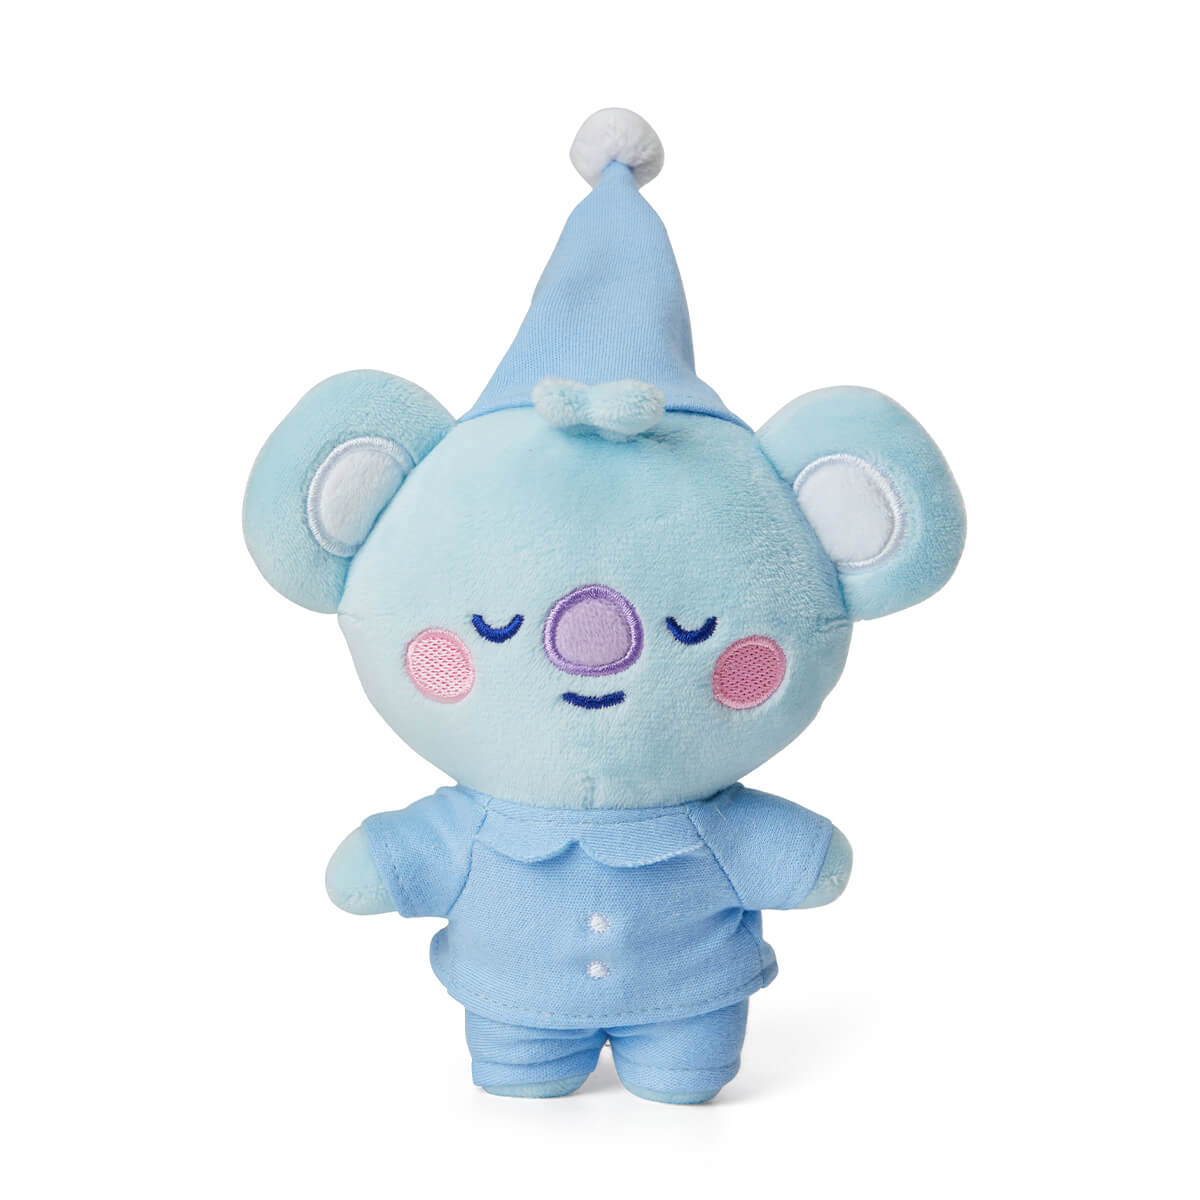 BT21 KOYA Dream of Baby Pajama Doll Set